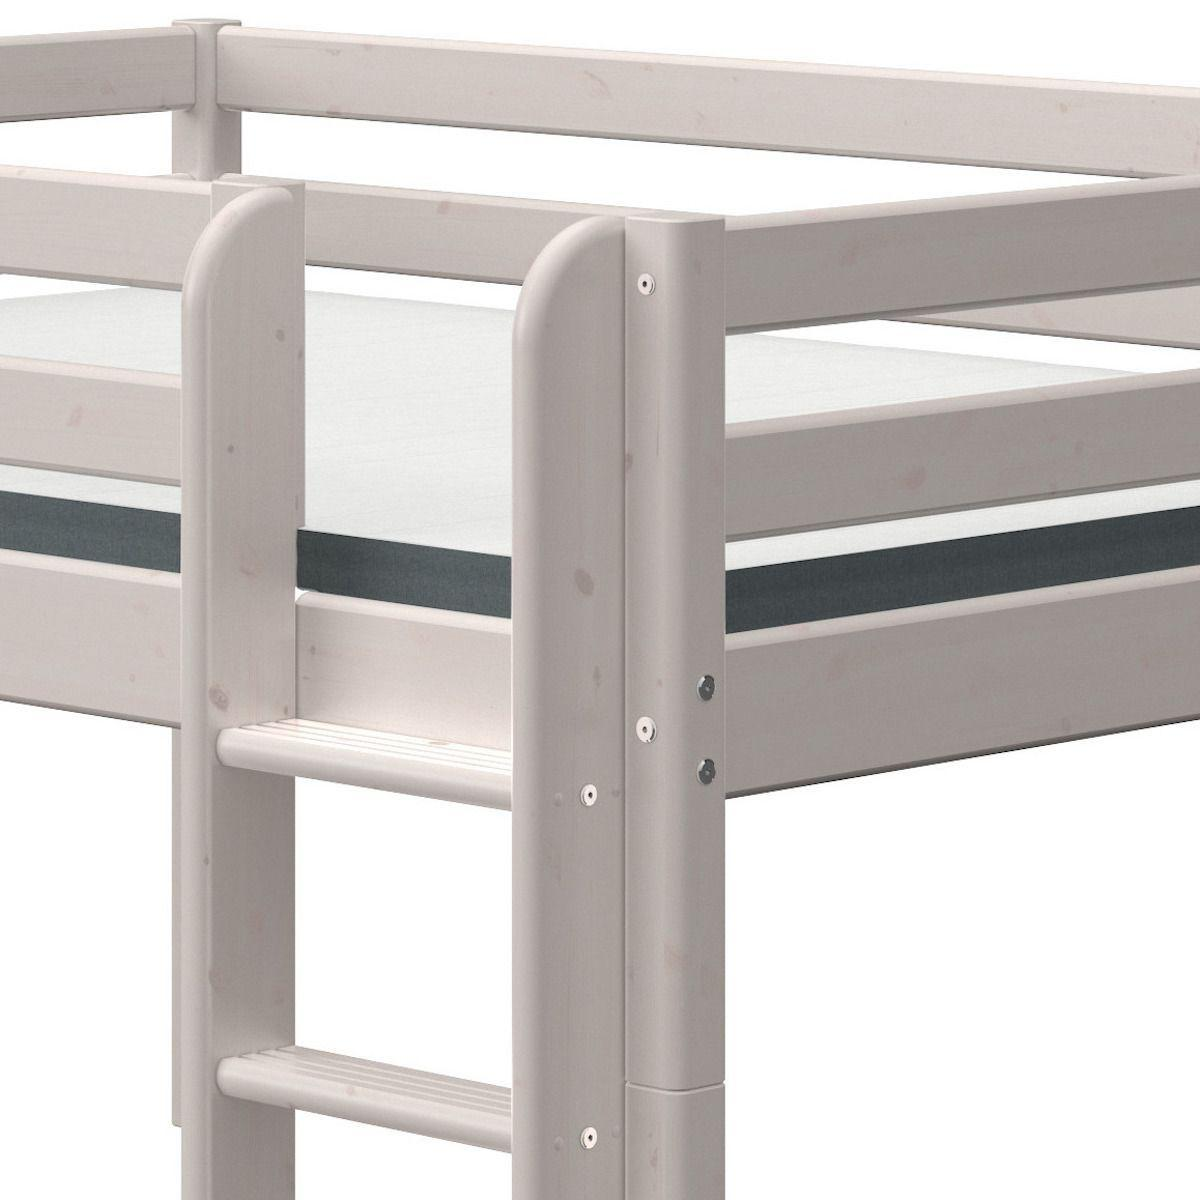 Cama media alta 140x190cm escalera recta CLASSIC Flexa grey washed